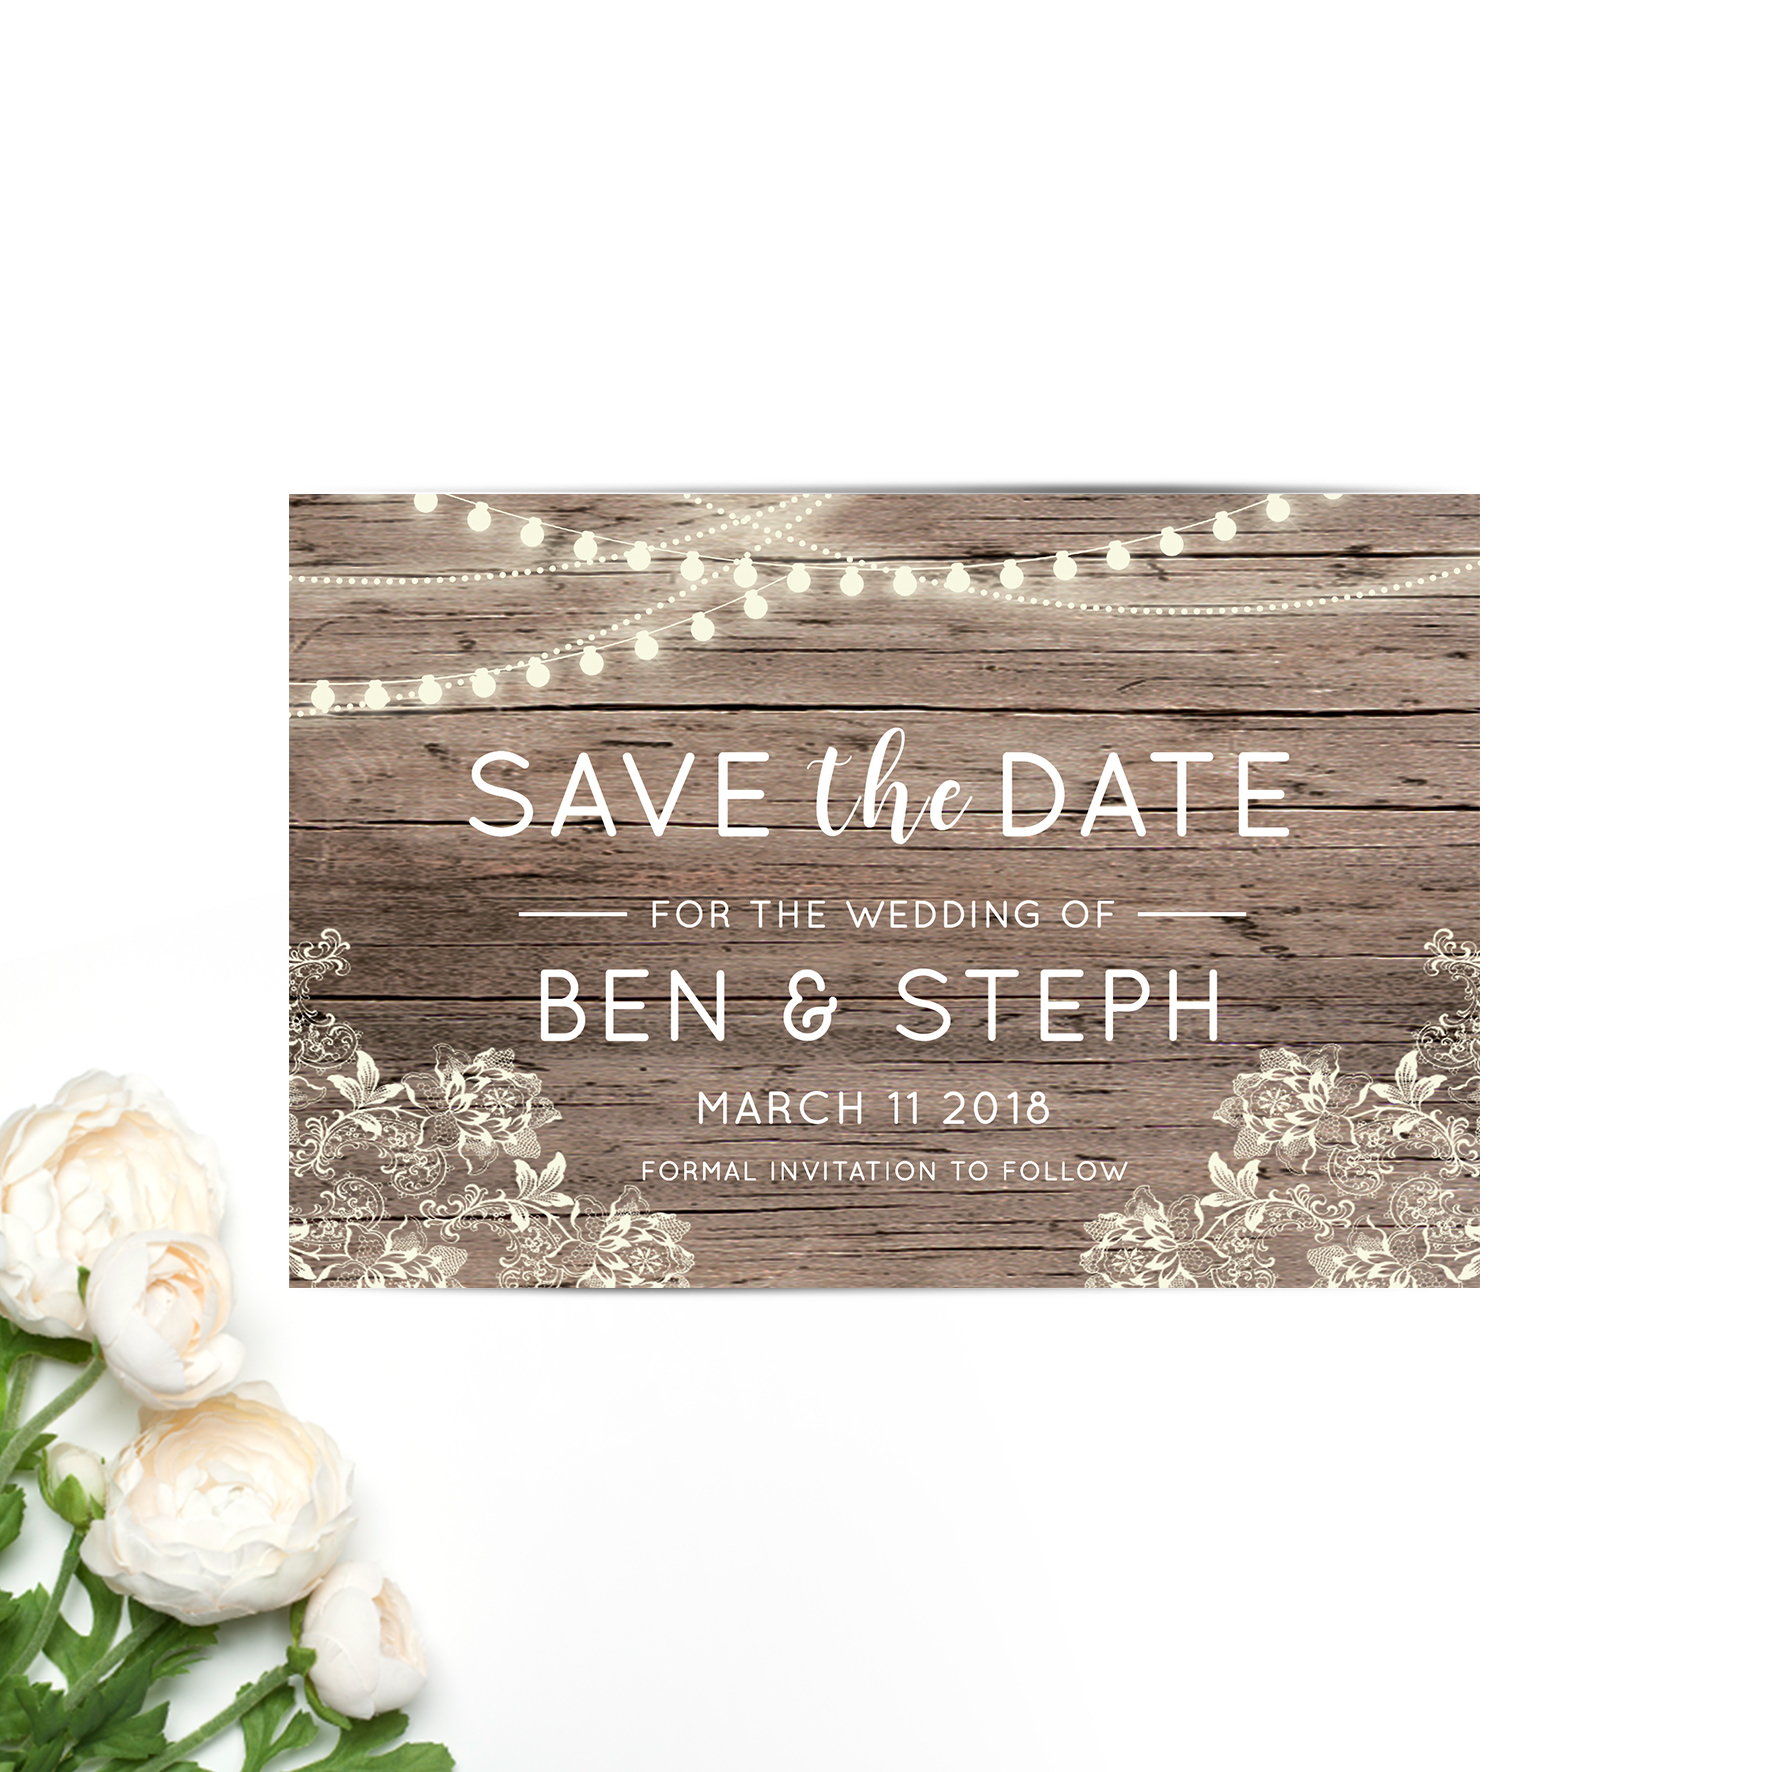 Ben + Steph Save the Date Card